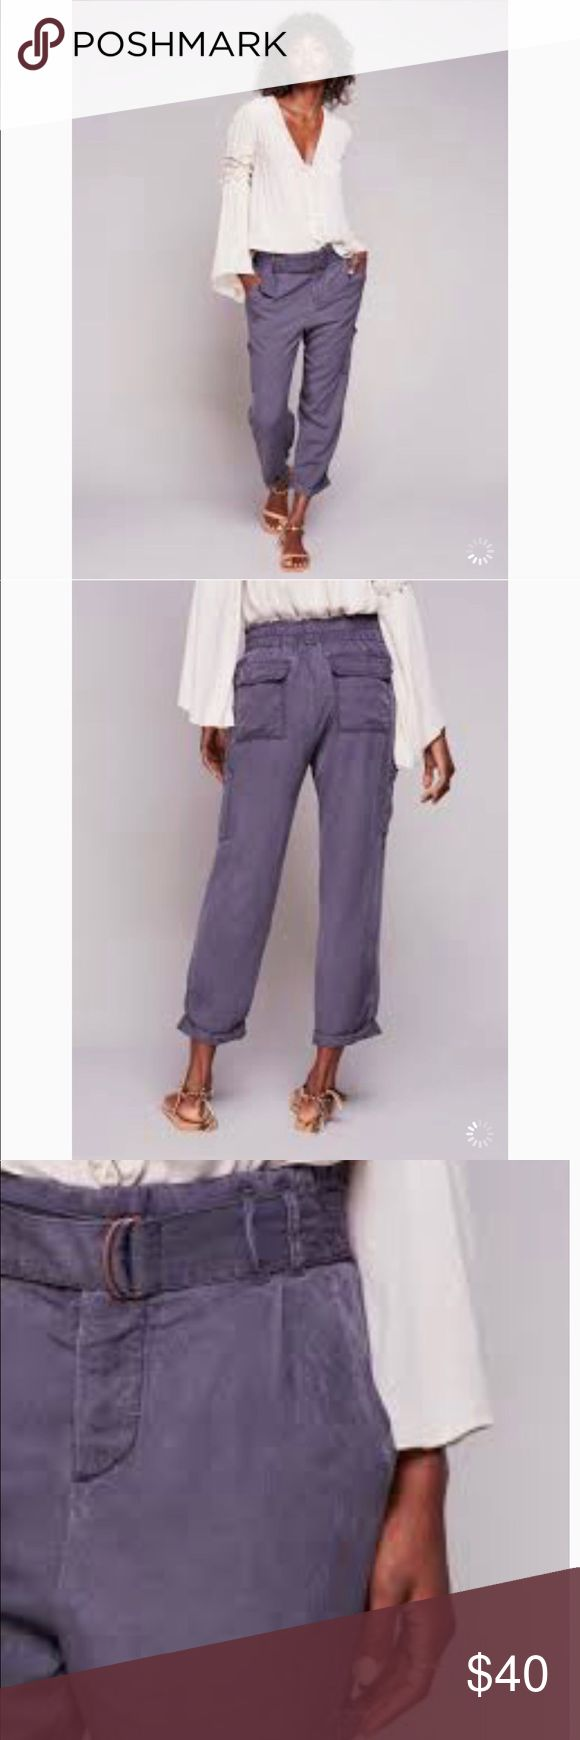 "Free people Belted Crop Cargo Pants💜💜 Light weight trendy cropped cargo pants. Lovely deep purple. Super light weight and soft!  Dress up or down! 100% Rayon. Inseam Flat approximately 27"" Hips 37"" As always make an offer, the least I can do is counter 😉💖. New in package! Free People Pants Ankle & Cropped"